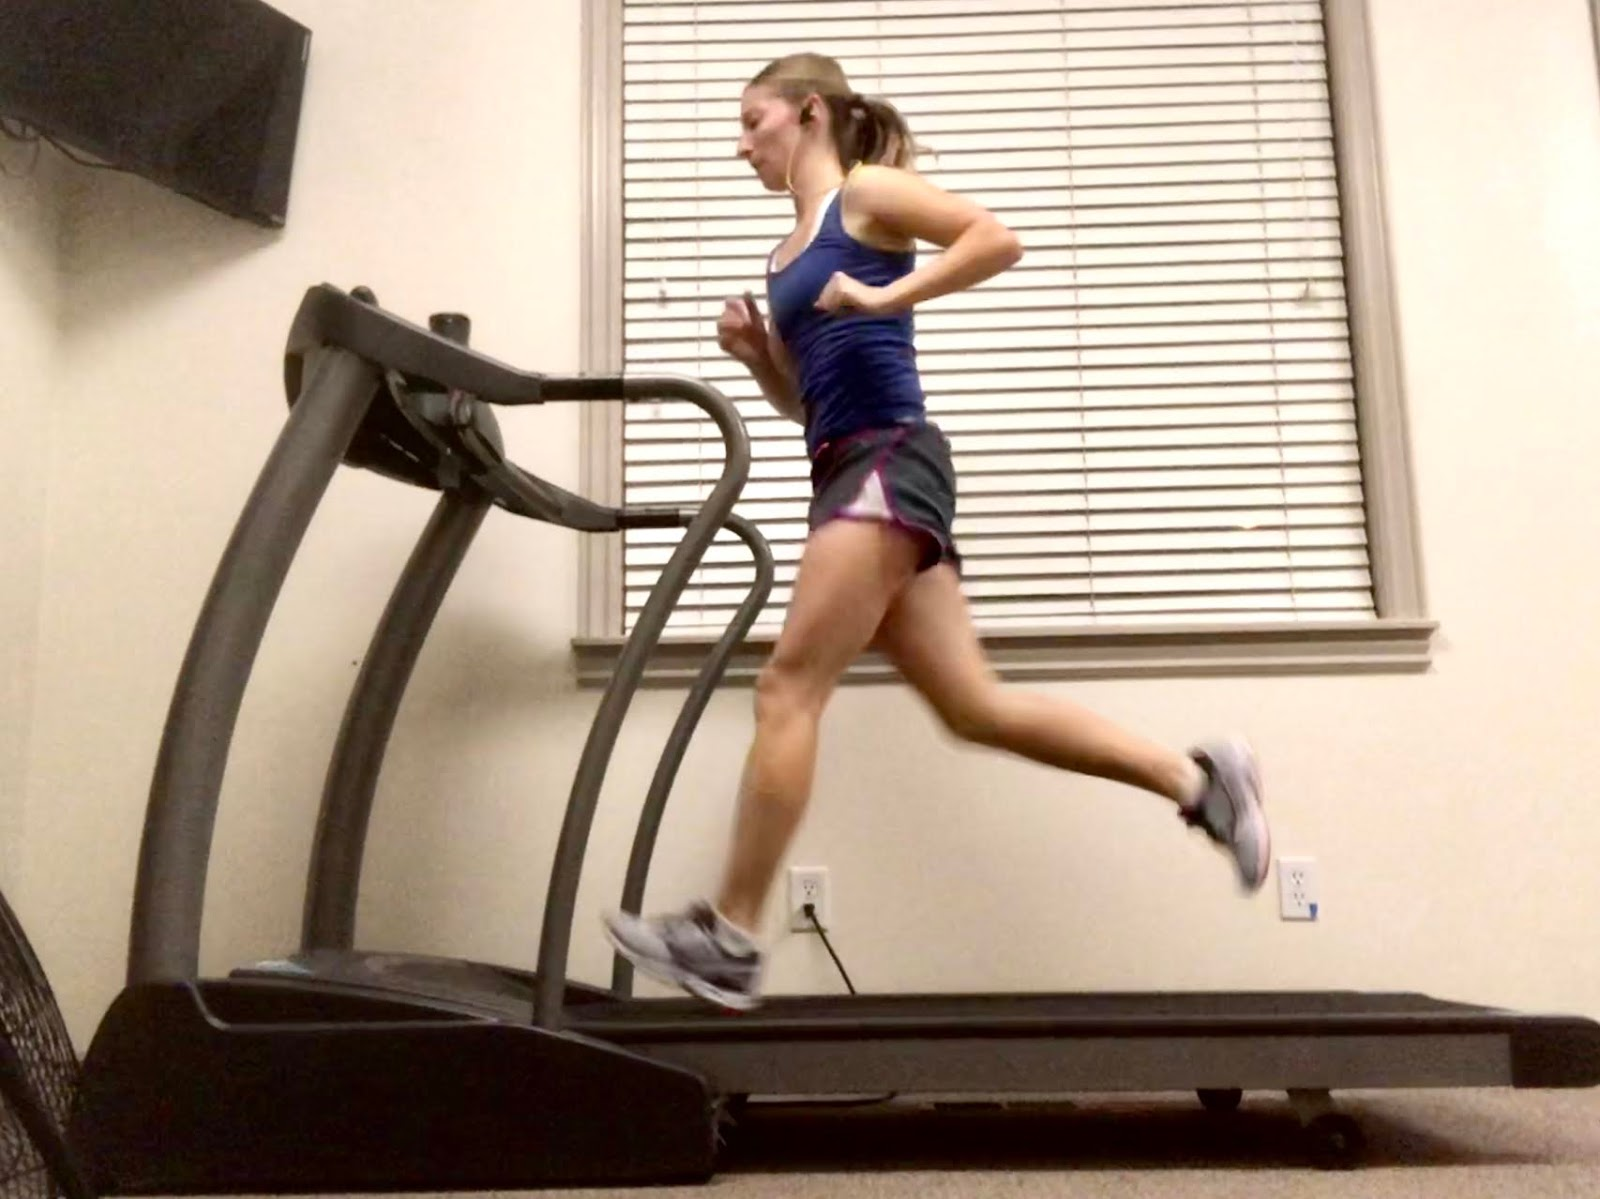 Things to do on a treadmill